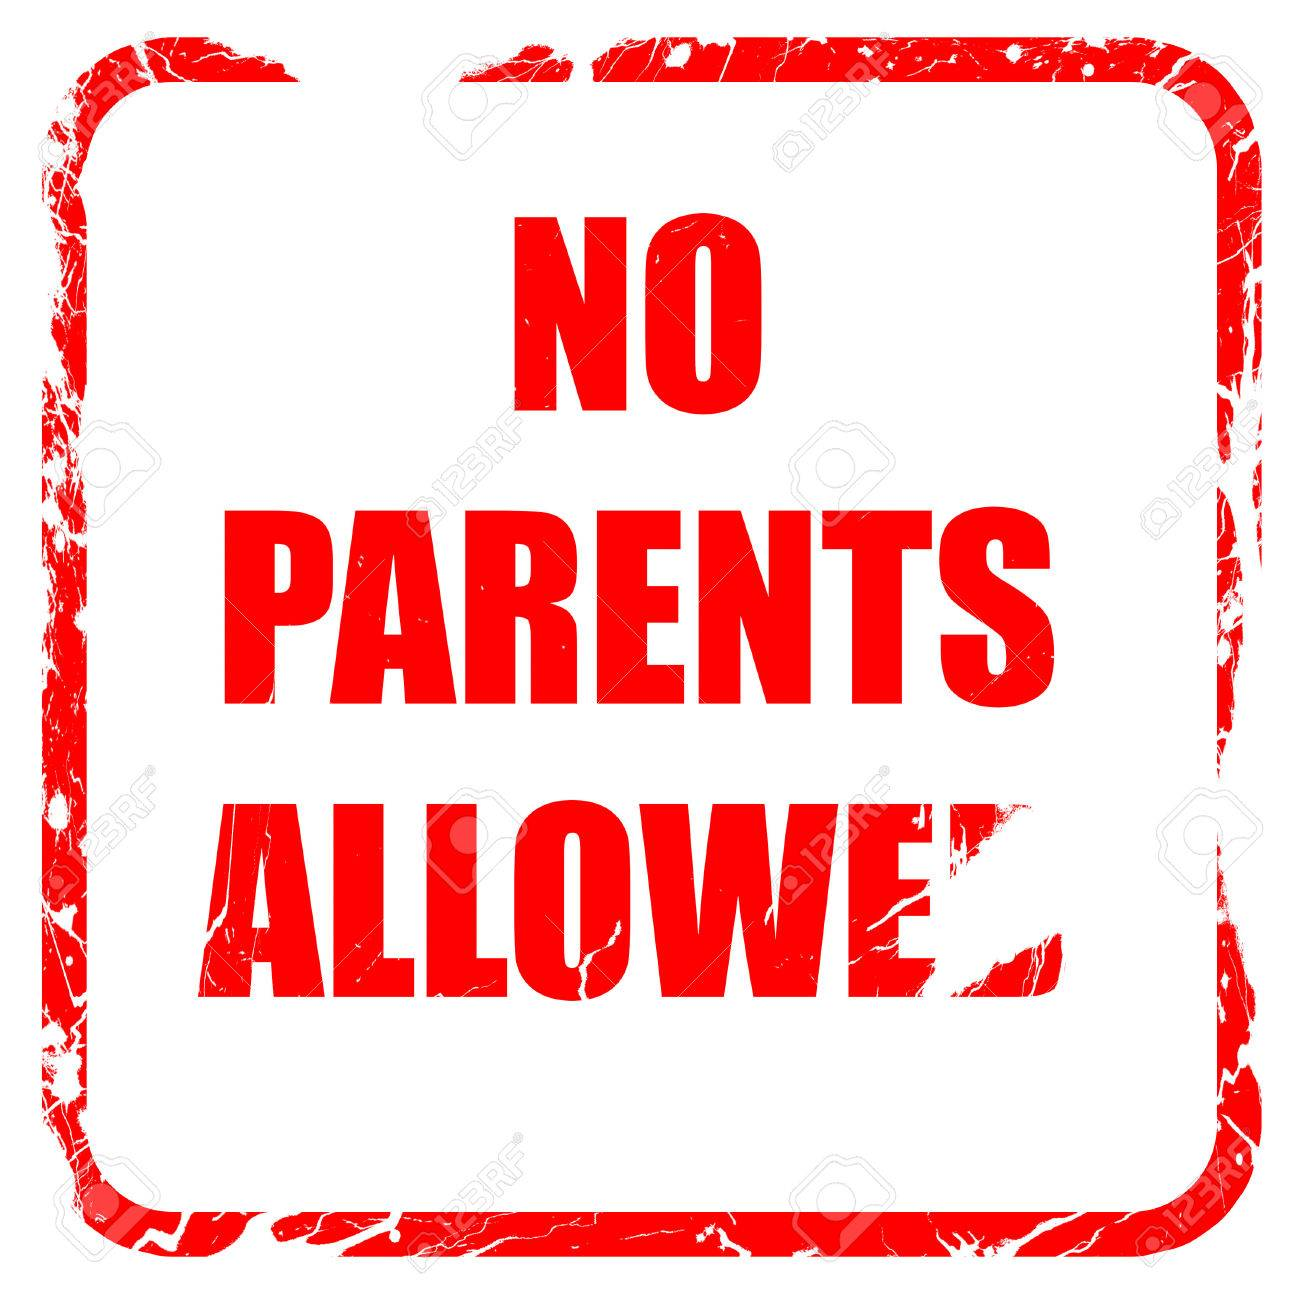 No Parents Allowed Sign With Some Vivid Colors Red Rubber Stamp Grunge Edges Stock